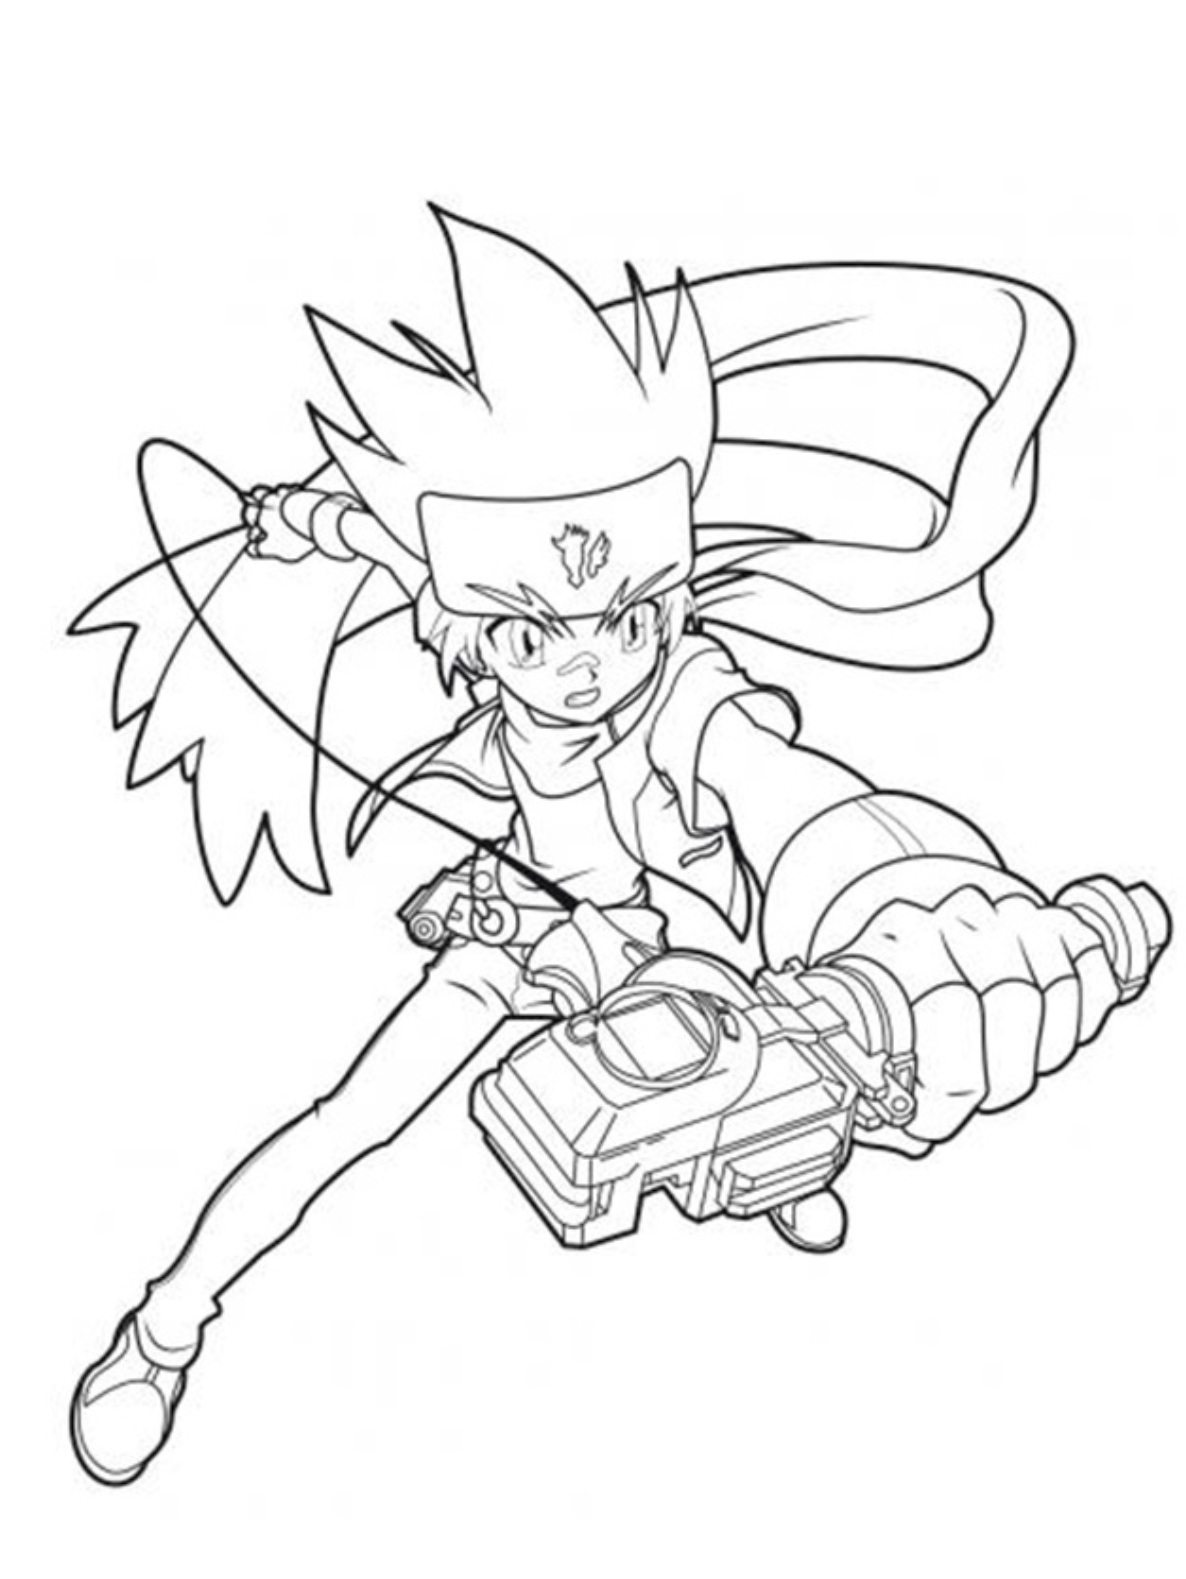 1186x1579 Quality Beyblade Shogun Steel Coloring Pages G